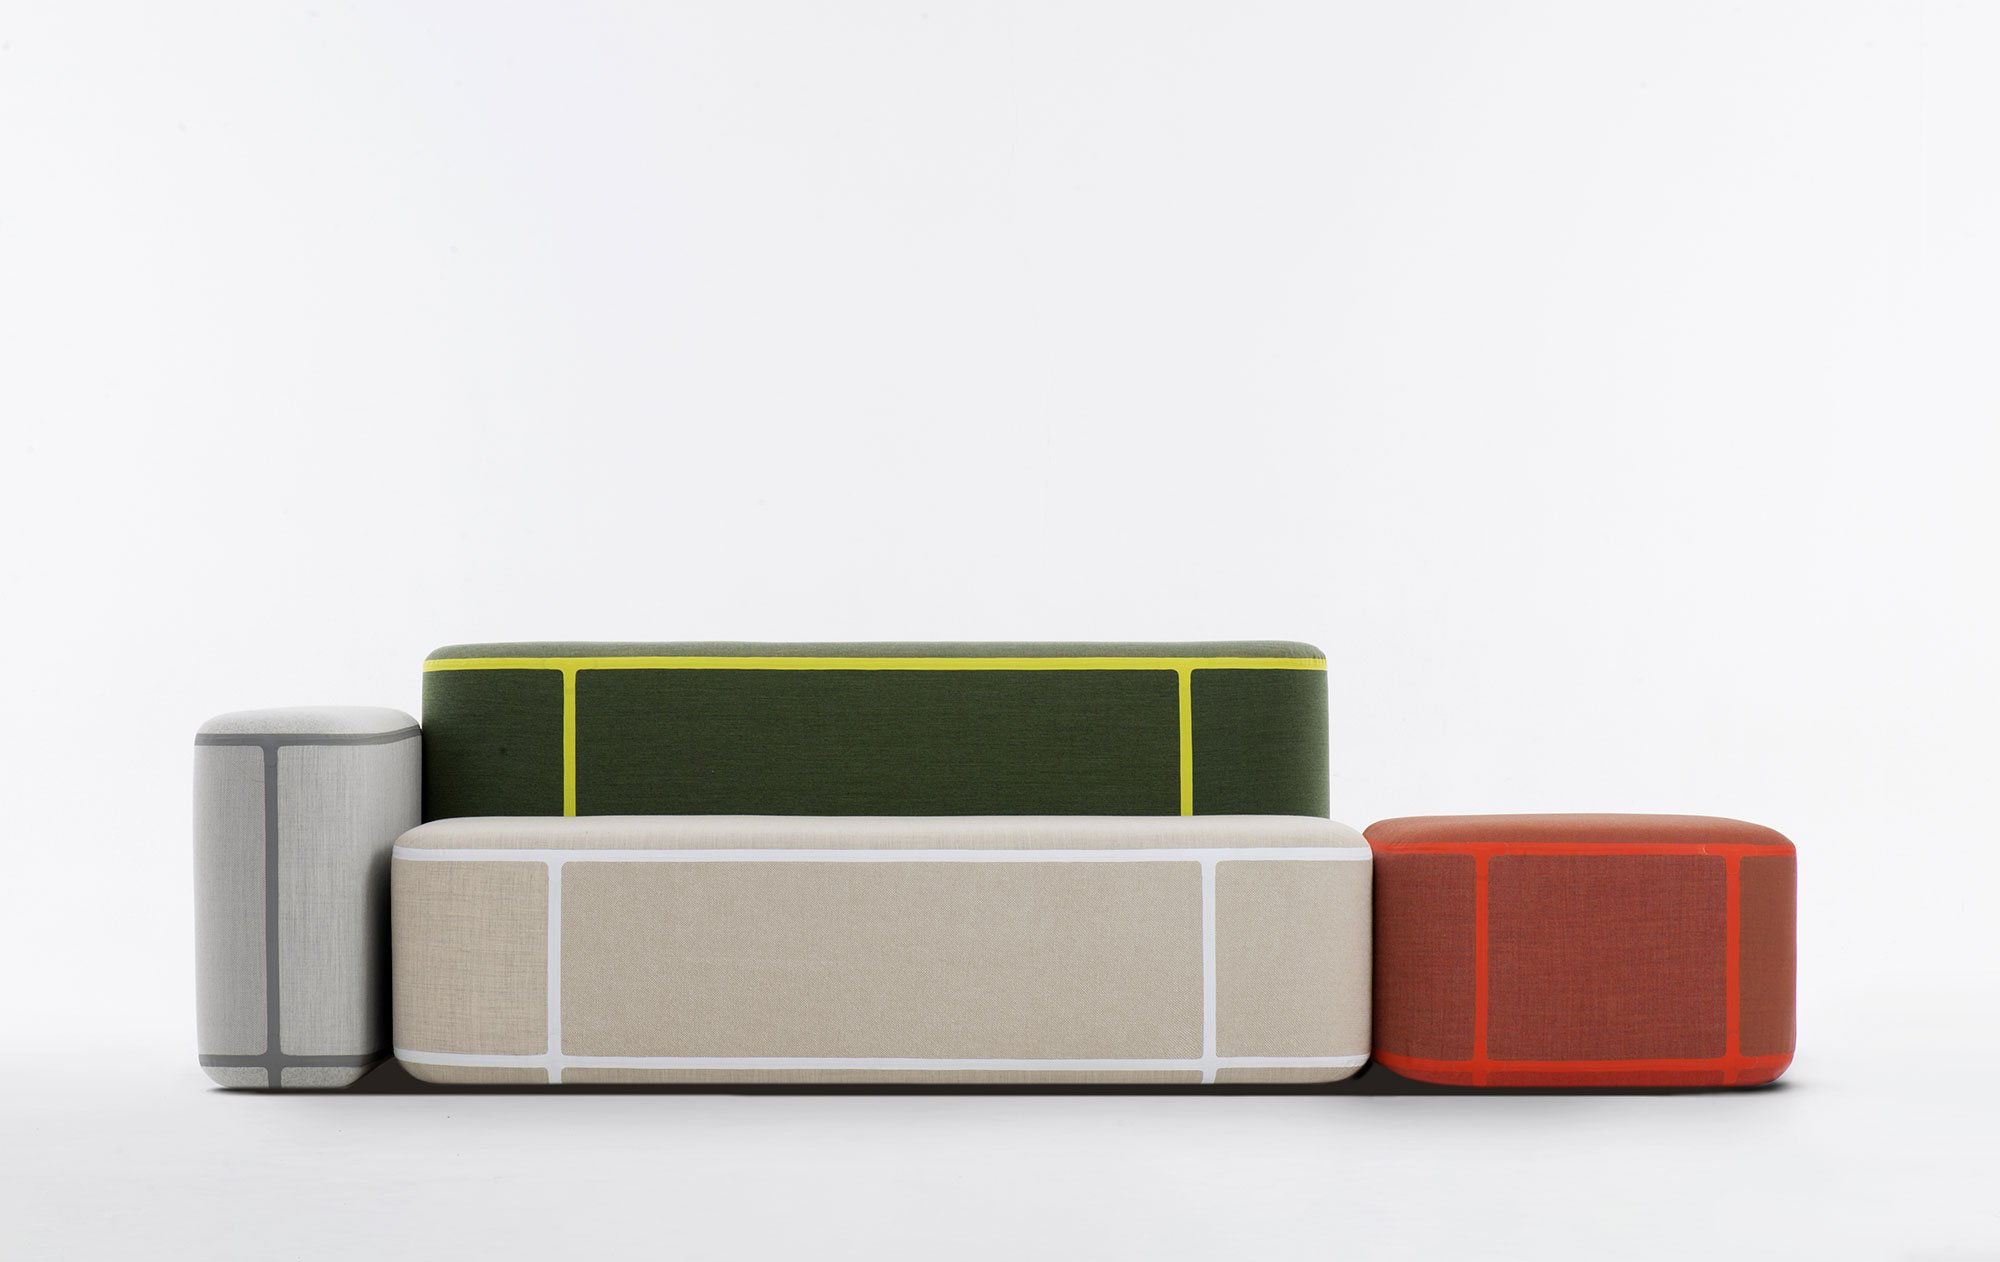 ... The Sofa Boasts Kvadrat Upholstery In A Variety Of Neutral And Brighter  Colors. Thin Strips Of Contrasting Tape Highlight The Shape Of The Modules  While ...